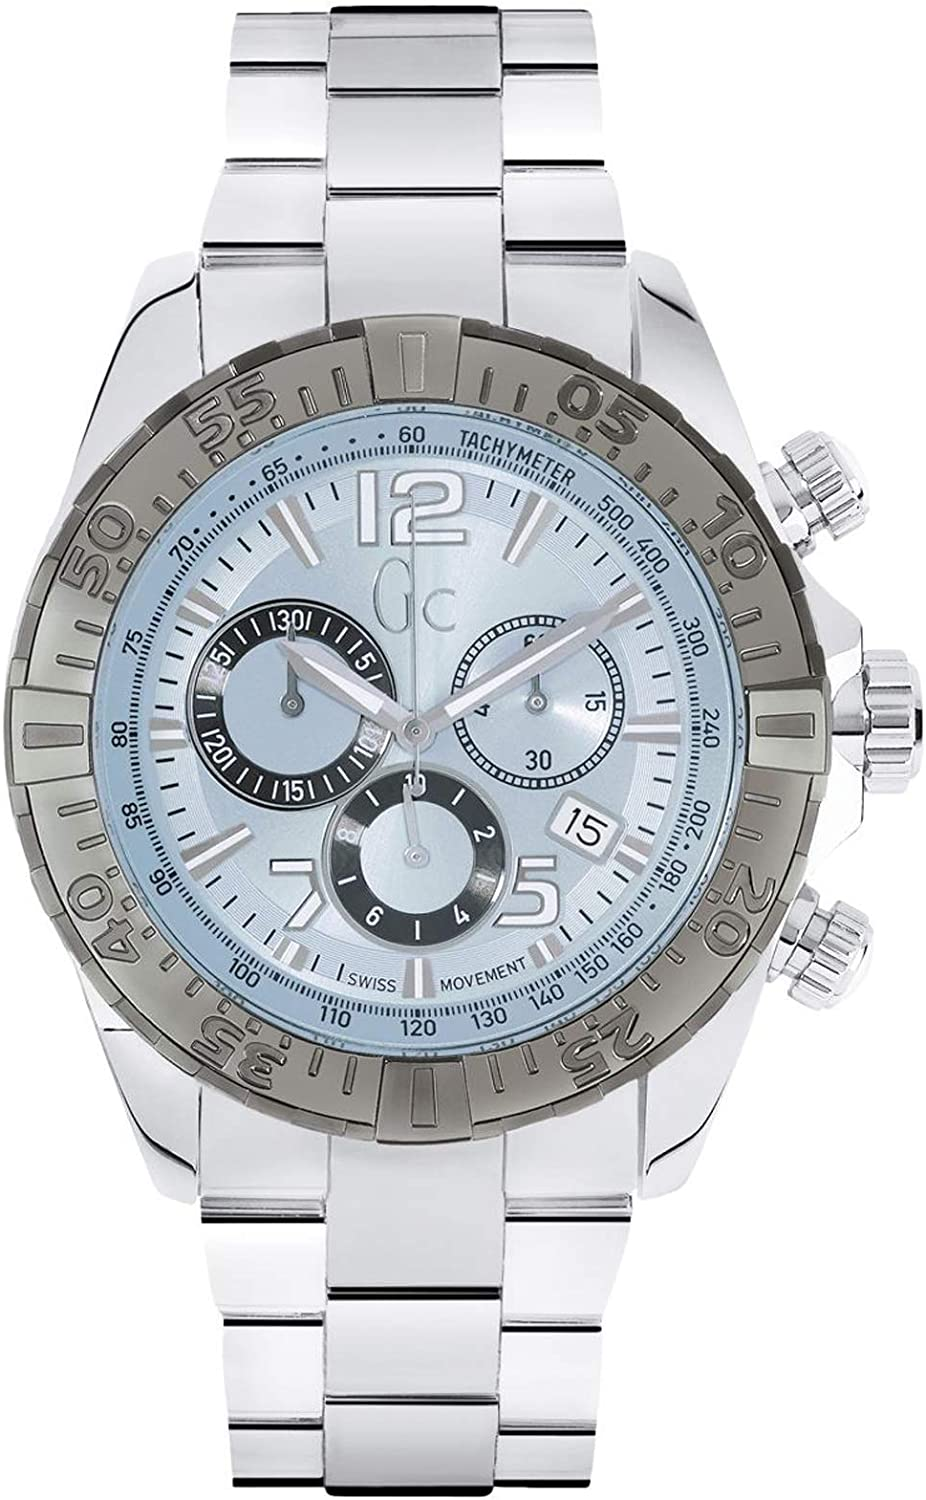 GC by Guess reloj hombre Sport Chic Collection Sport Racer cronógrafo Y02005G7